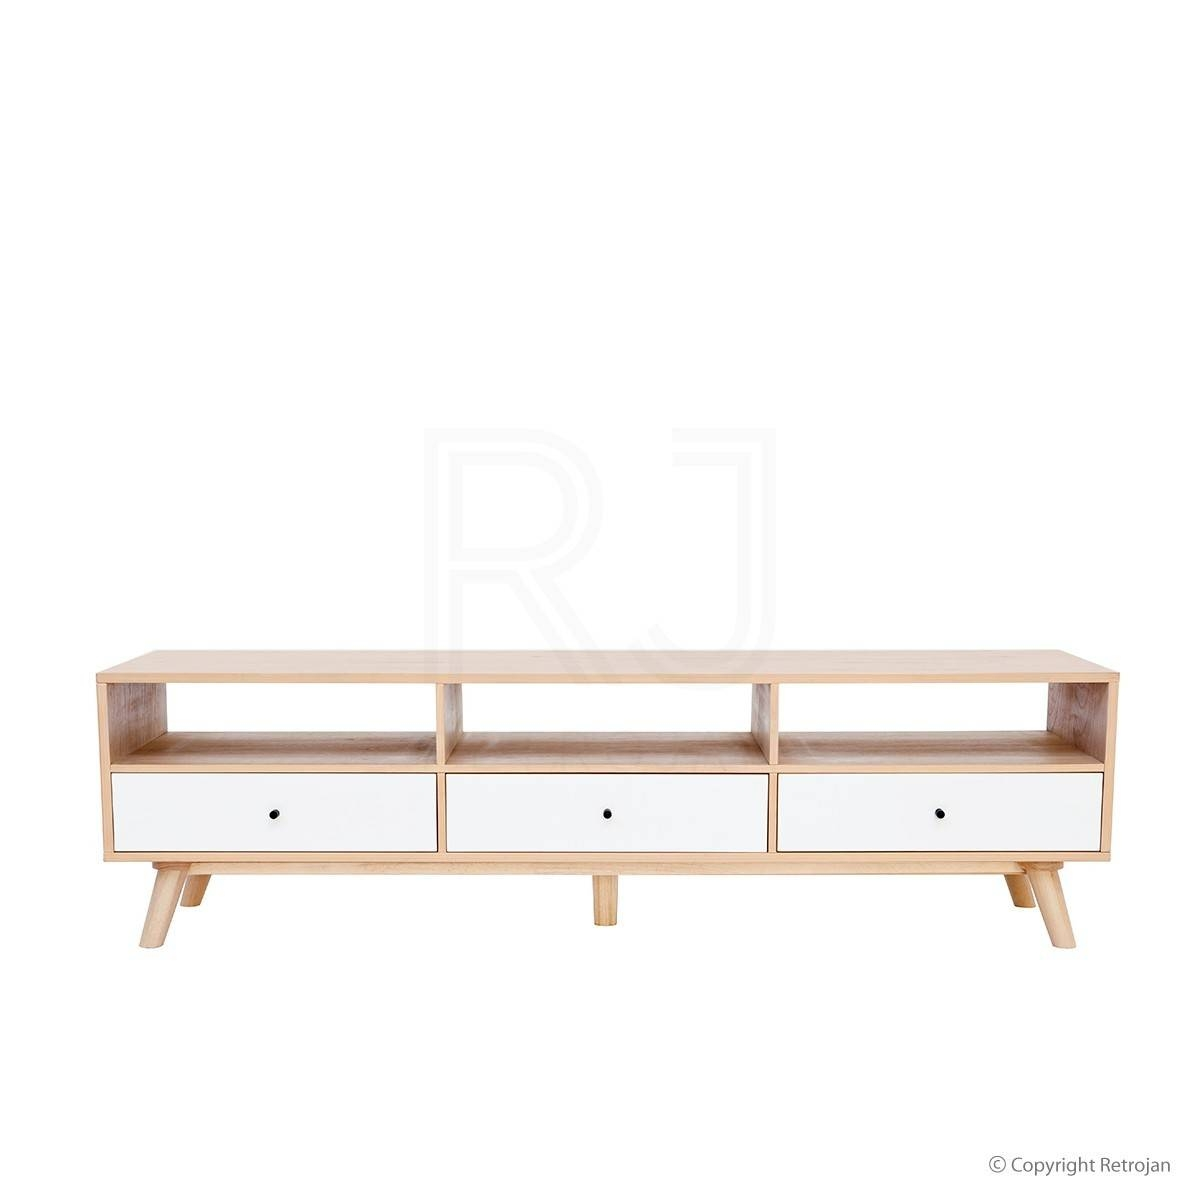 Tv Stand | Buy Hans Tv Unit | Scandinavian Tv & Av Units – Retrojan Within Scandinavian Tv Stands (View 15 of 15)